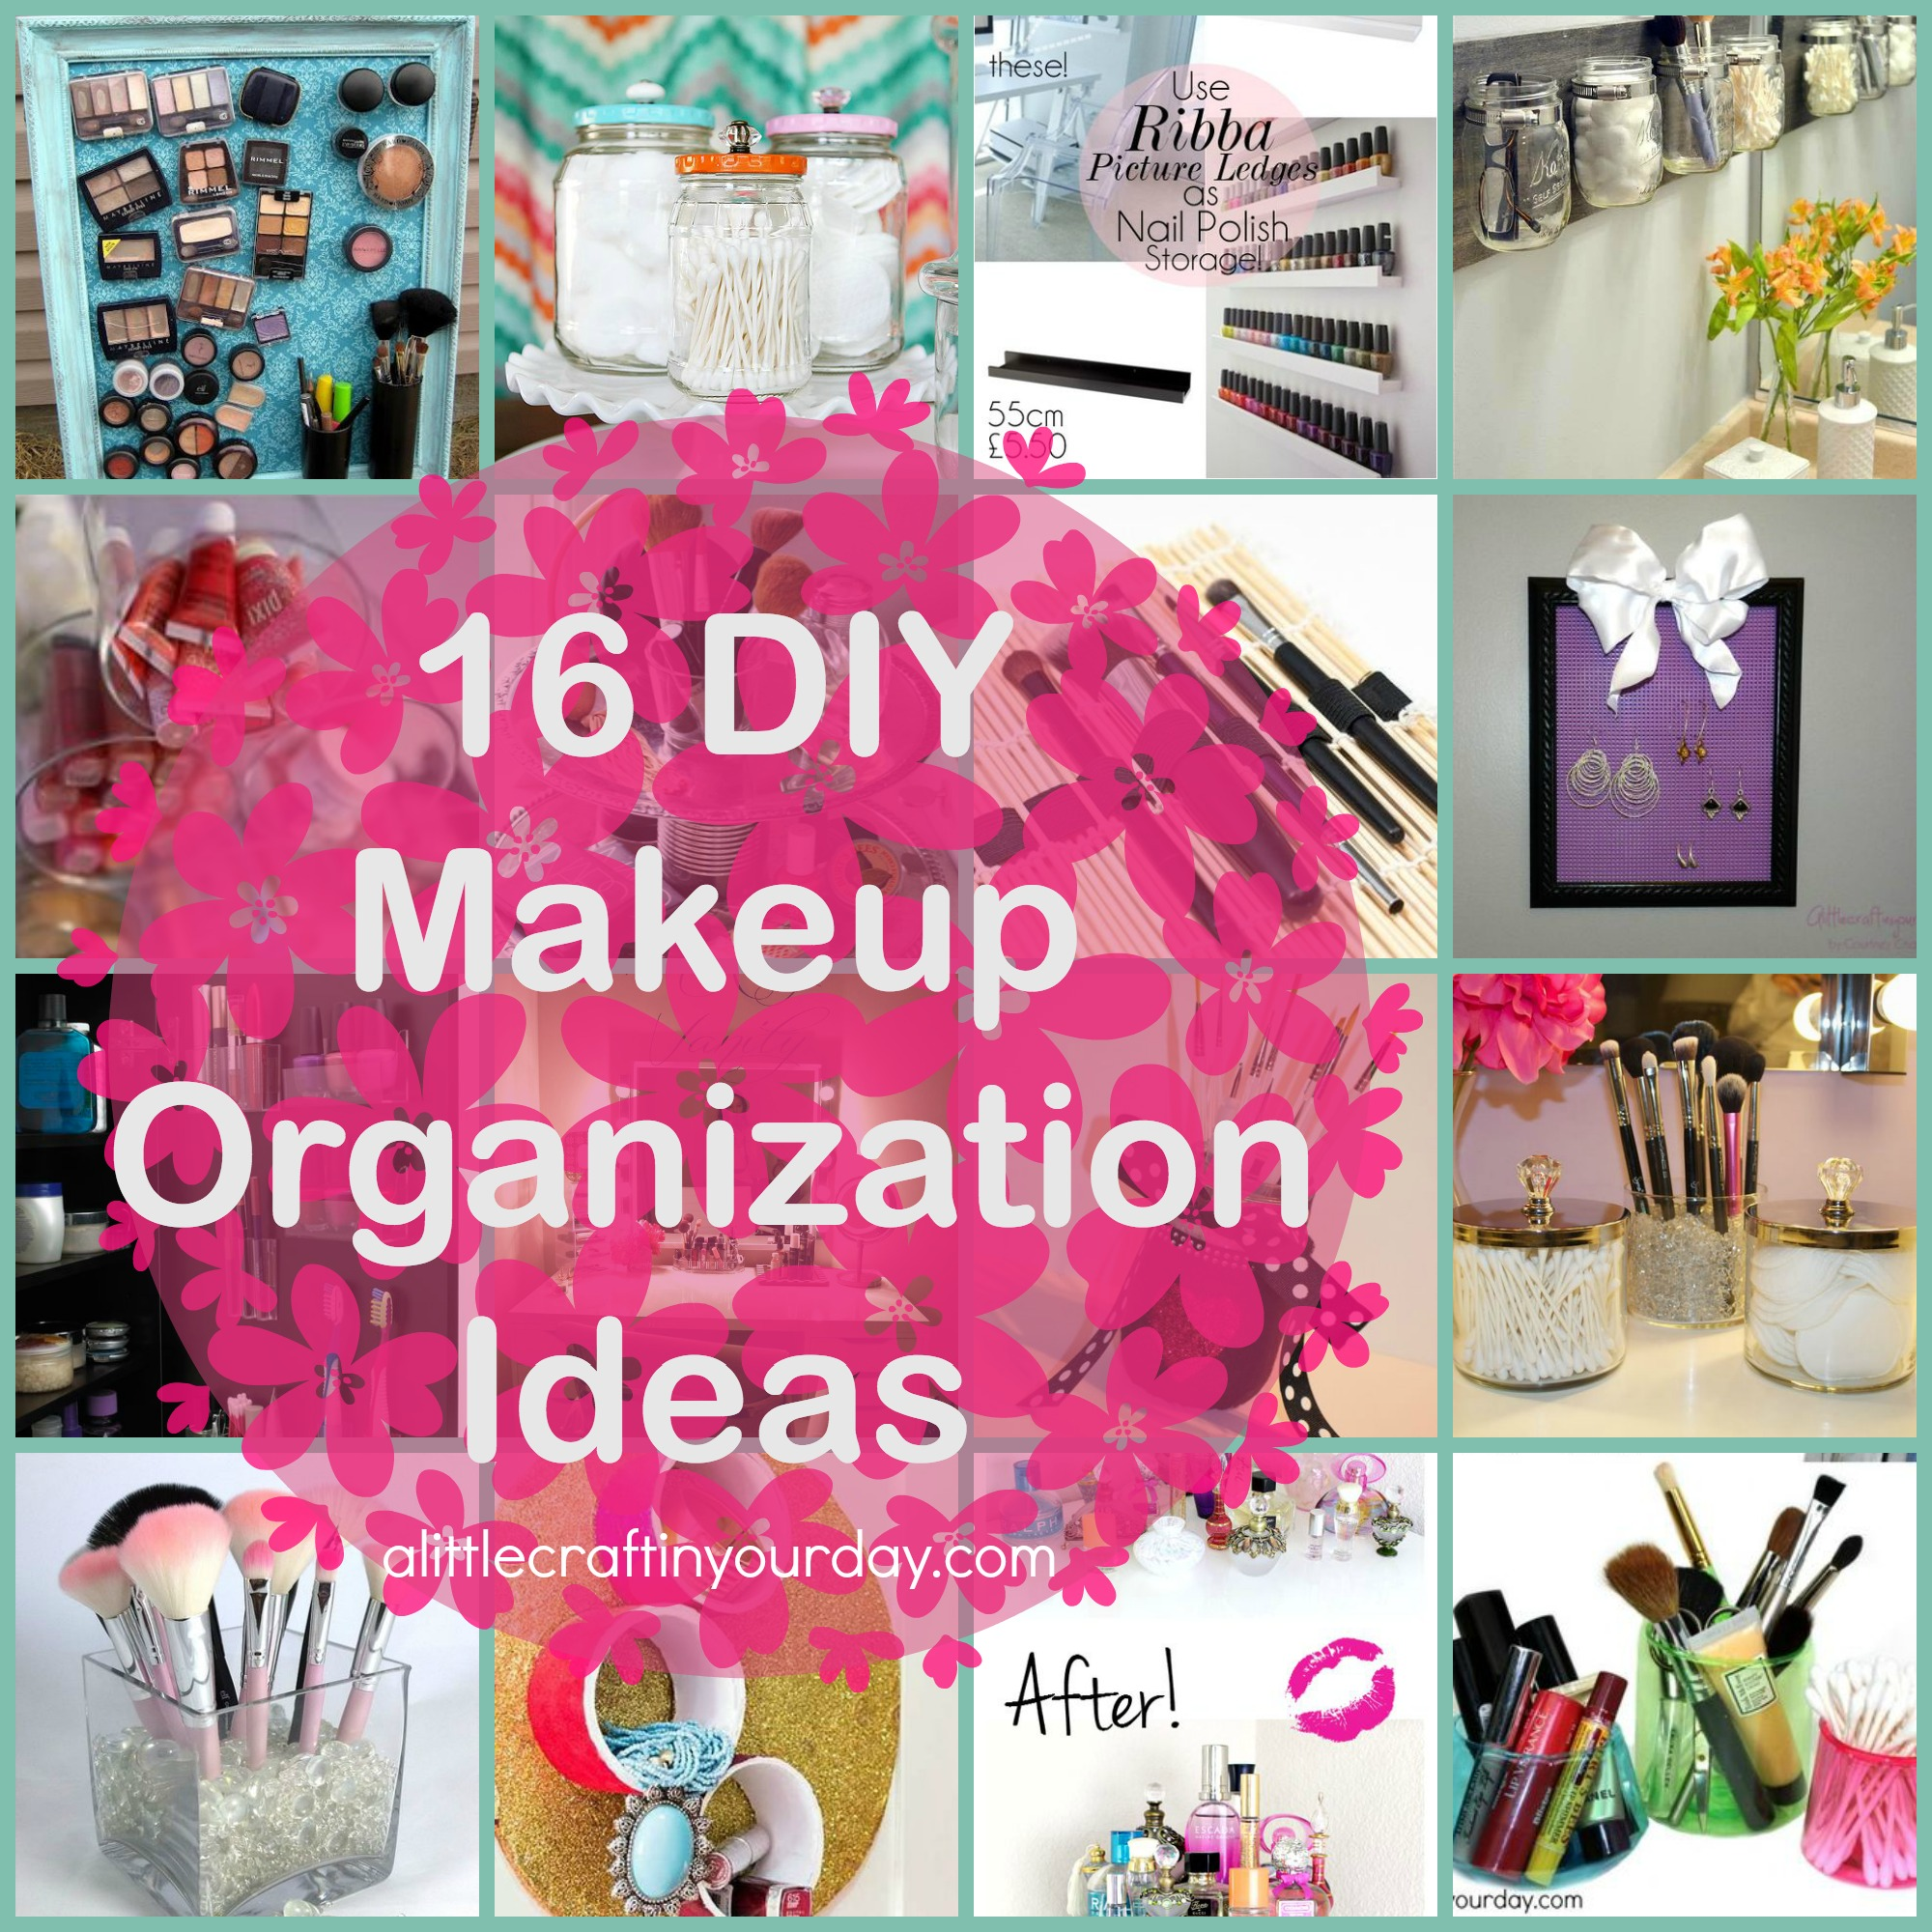 16 diy makeup organization ideas a little craft in your day 16diymakeuporganizationideas solutioingenieria Gallery